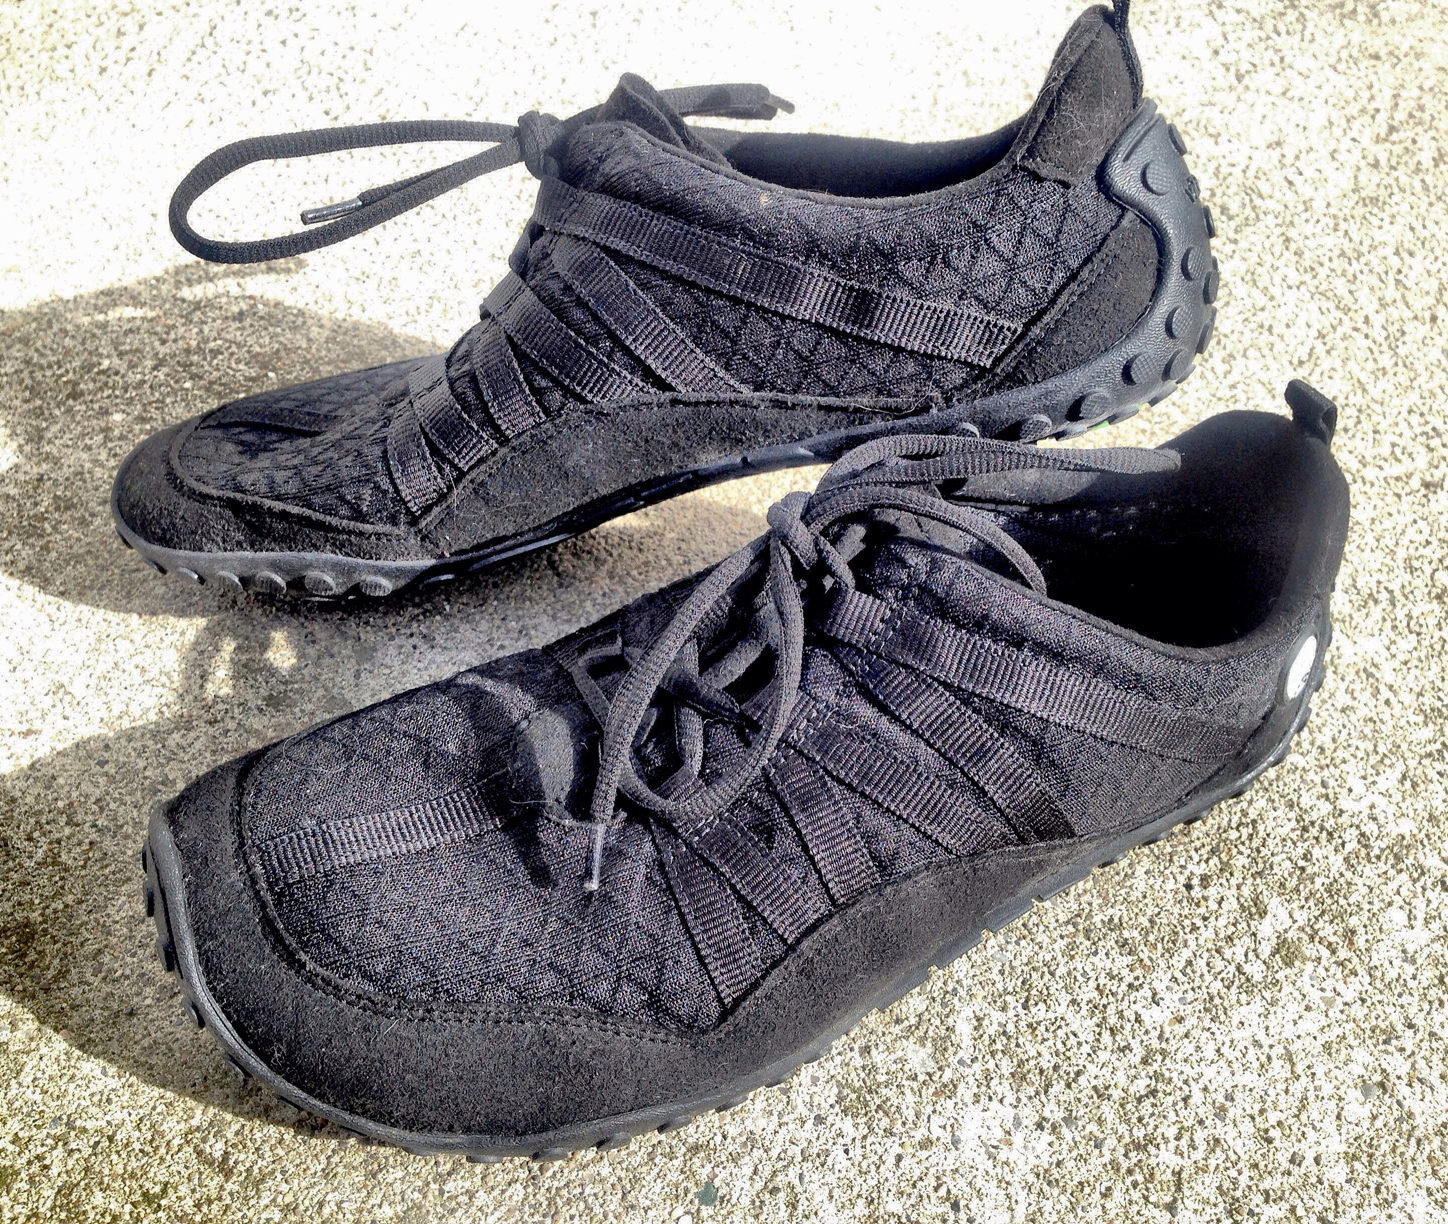 Nimble Toes Zero Drop Running Shoes Review